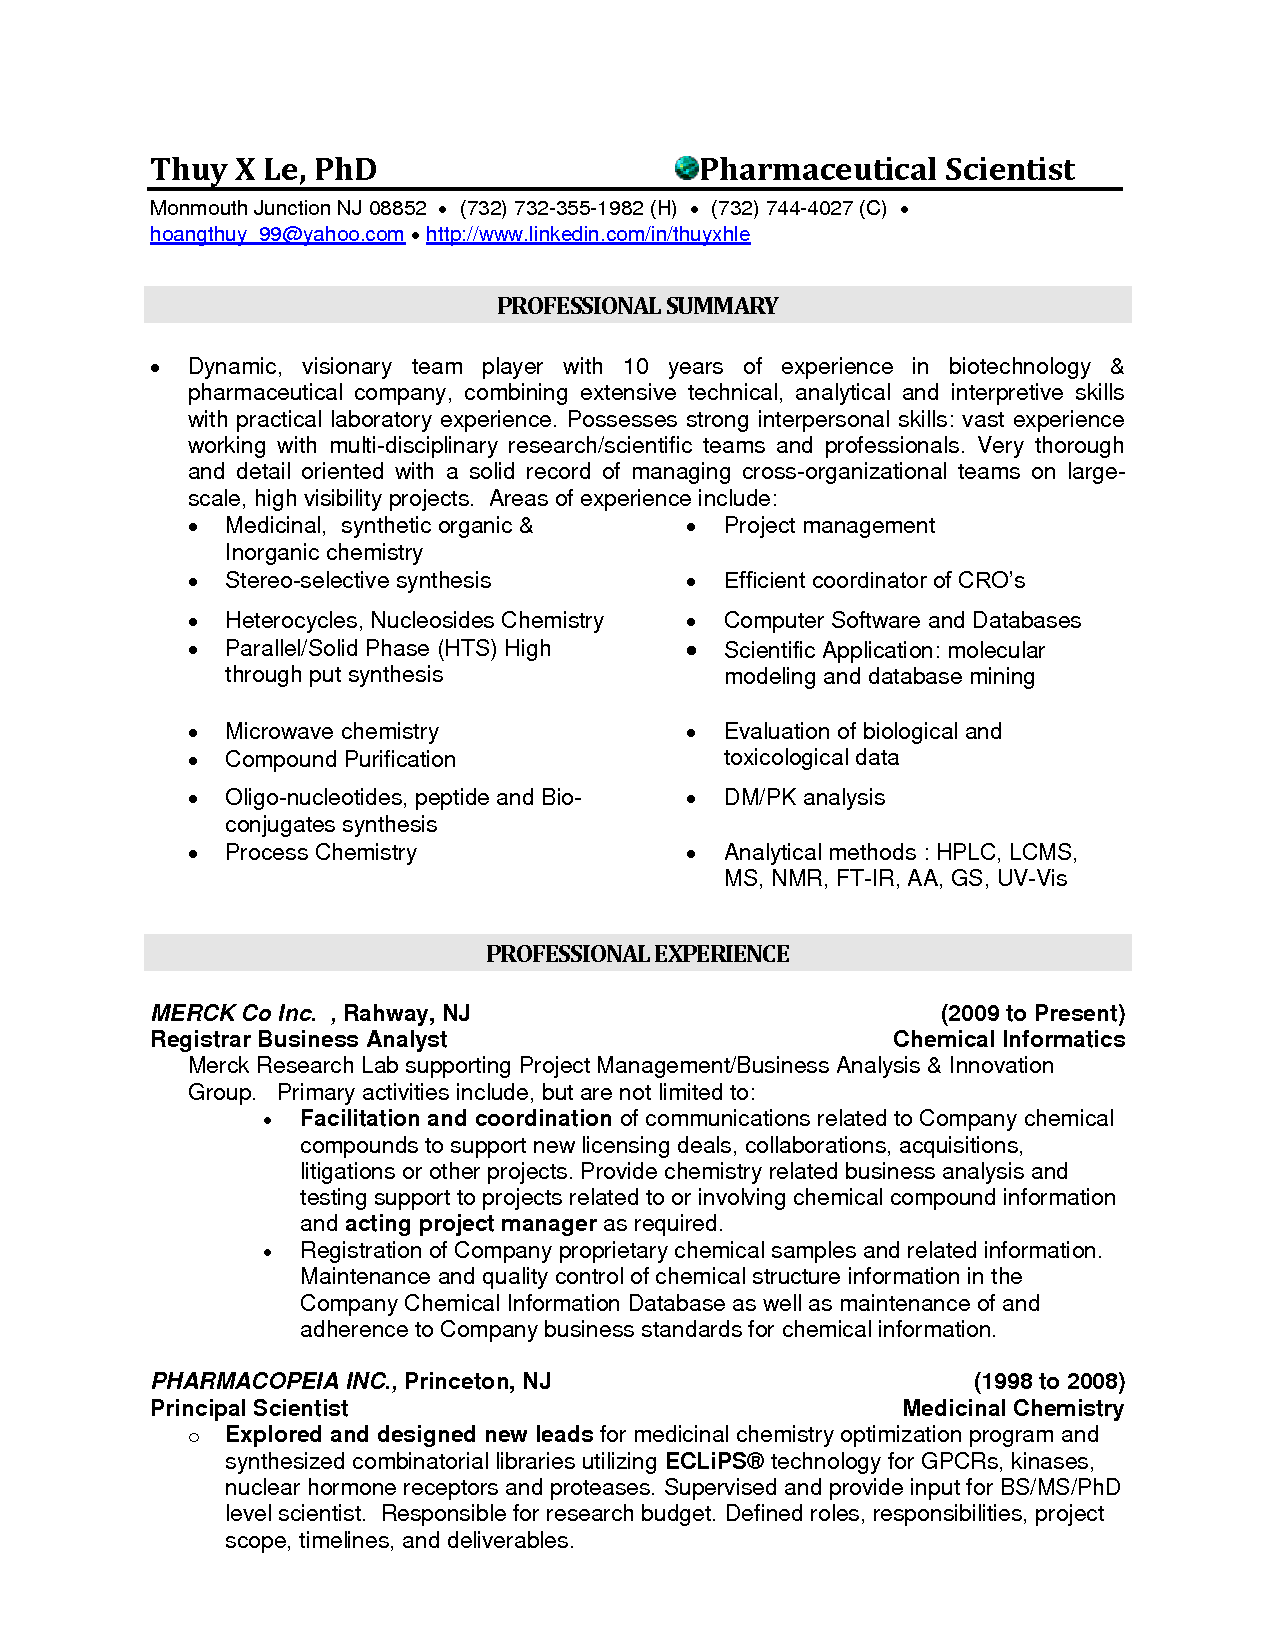 professional biochemist resume - again, a summary is used as opposed